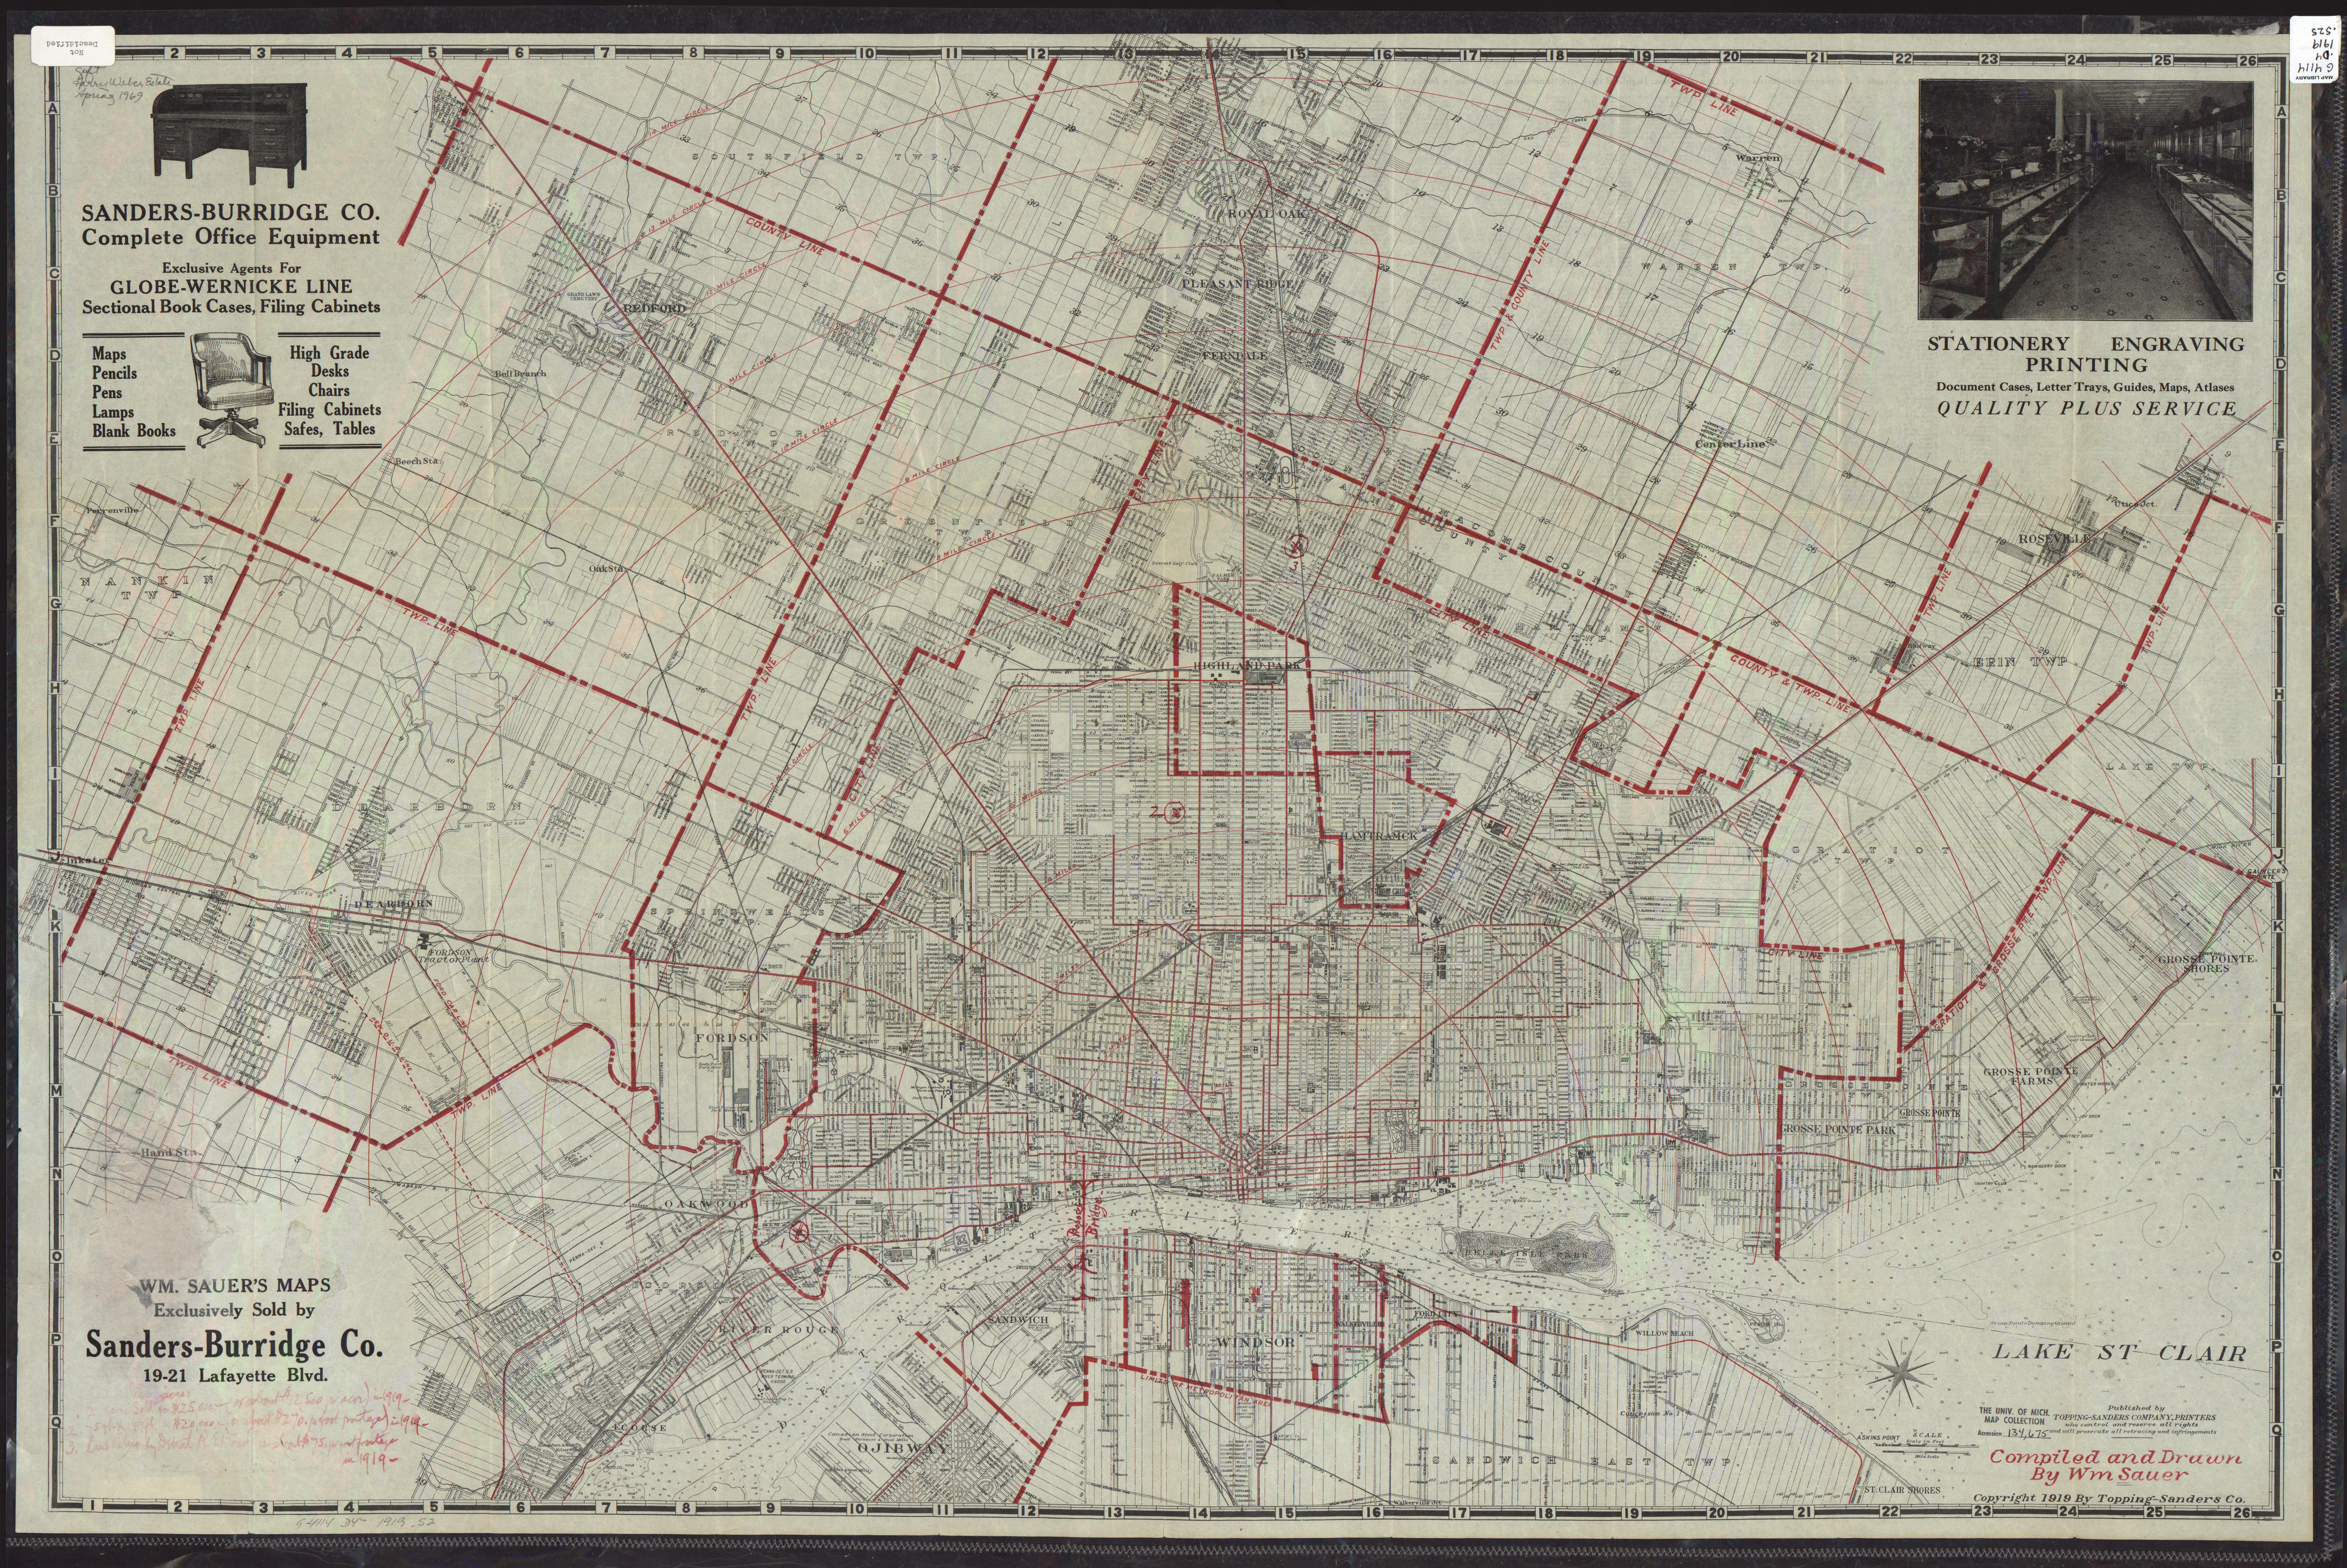 UM Clark Liry Maps: Sauer's map of the city of Detroit and ... on map of delaware, map of new york, map of midwest, map of chicago, map of harper woods, map of great lakes, map of miami, map of olivet, map of san jose, map of 8 mile, map of caro, map of giants, map of highland park, map of vassar, map of boston, map of pauls valley, map of toronto, map of tampa, map of auburn hills, map of michigan,